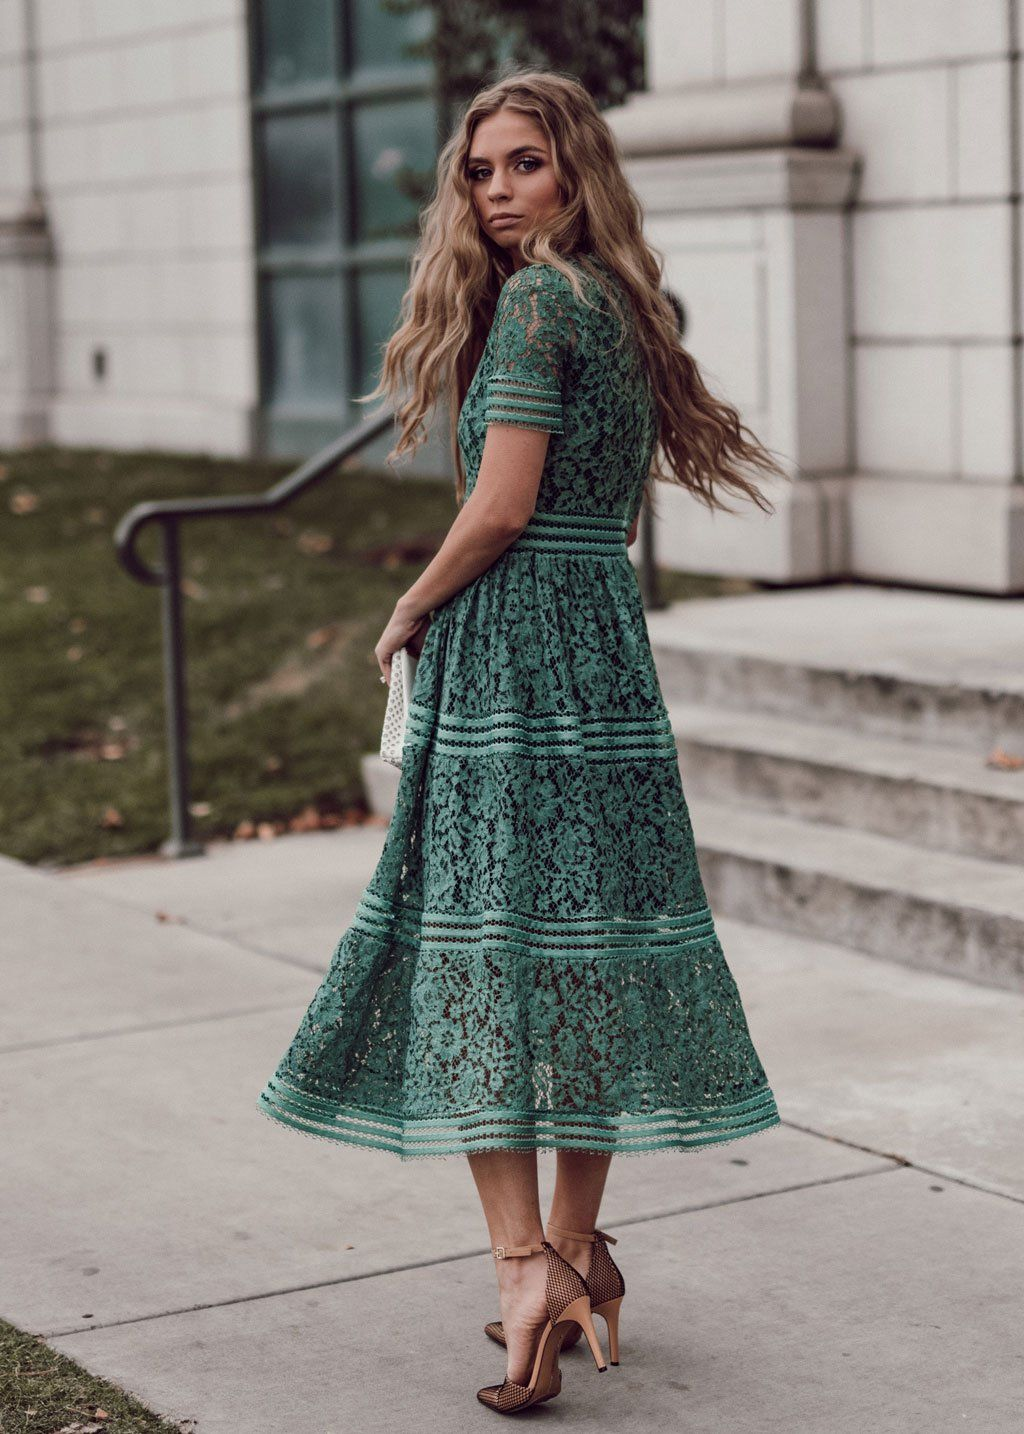 Duchess lace dress in 2020 green lace dresses dresses